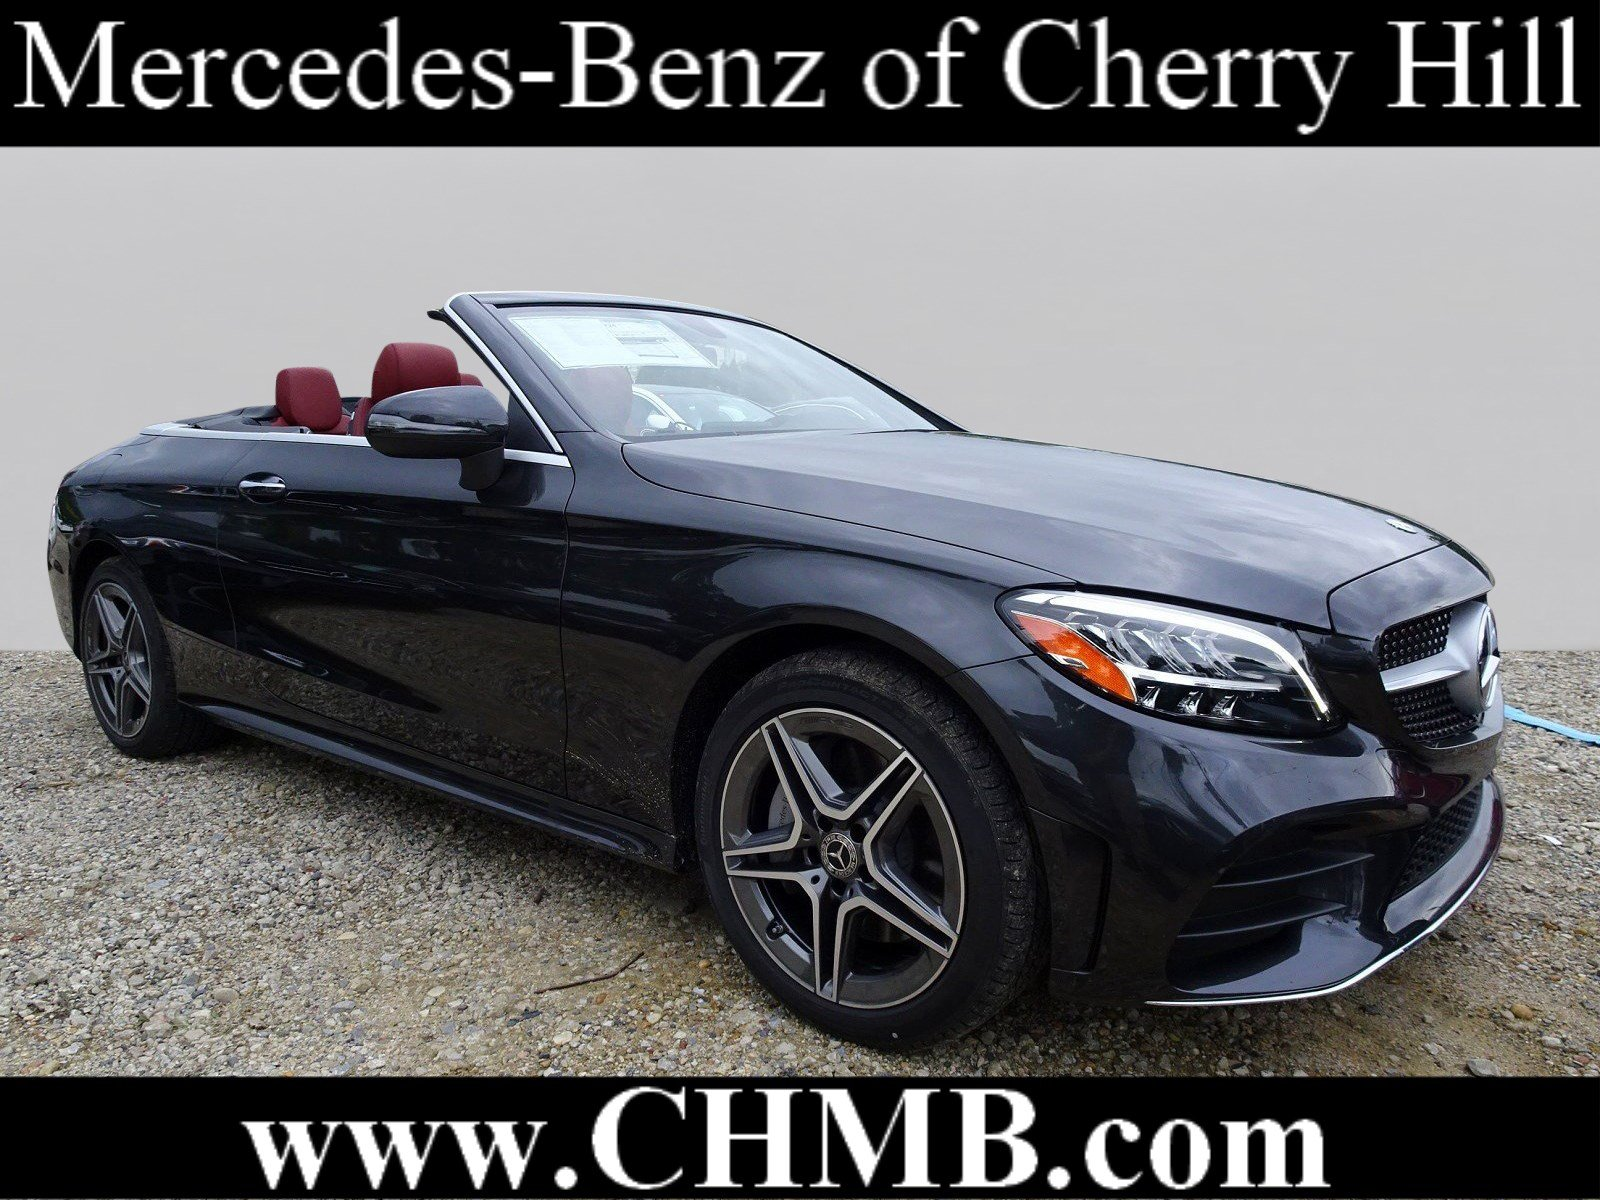 New 2019 Mercedes Benz C Class C 300 CABRIOLET in Cherry Hill M2332